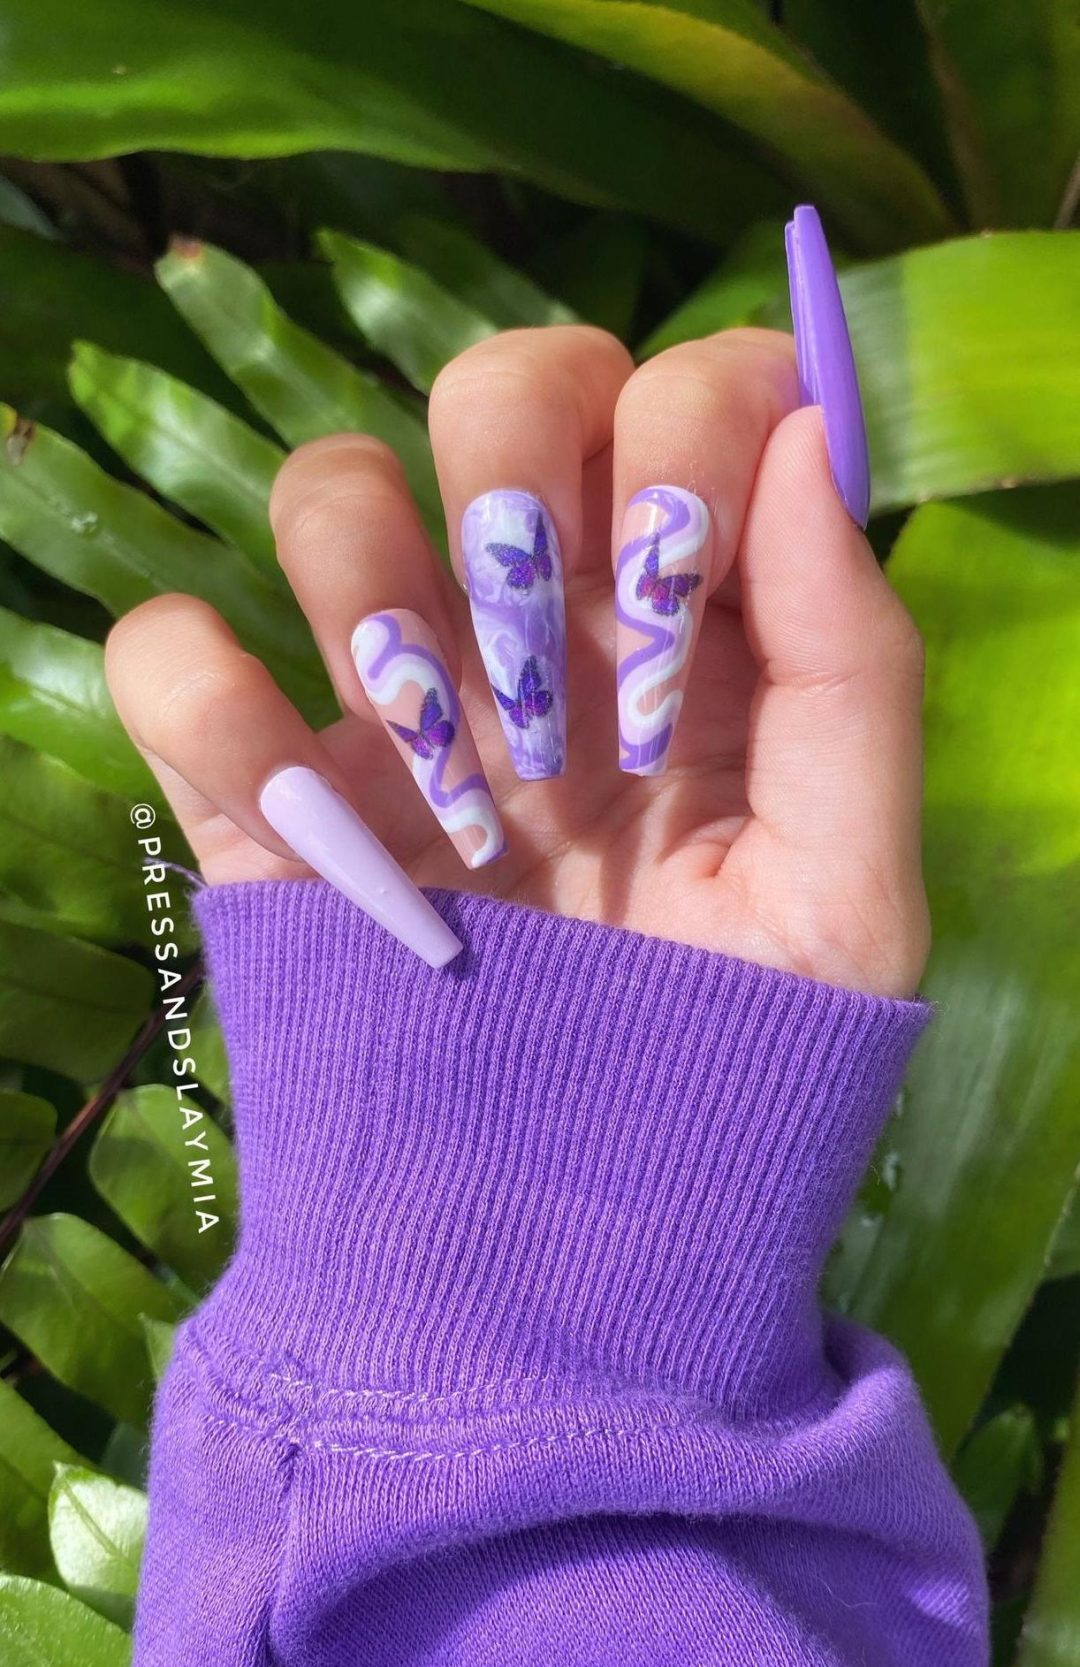 Purple retro and abstract nails with butterflies